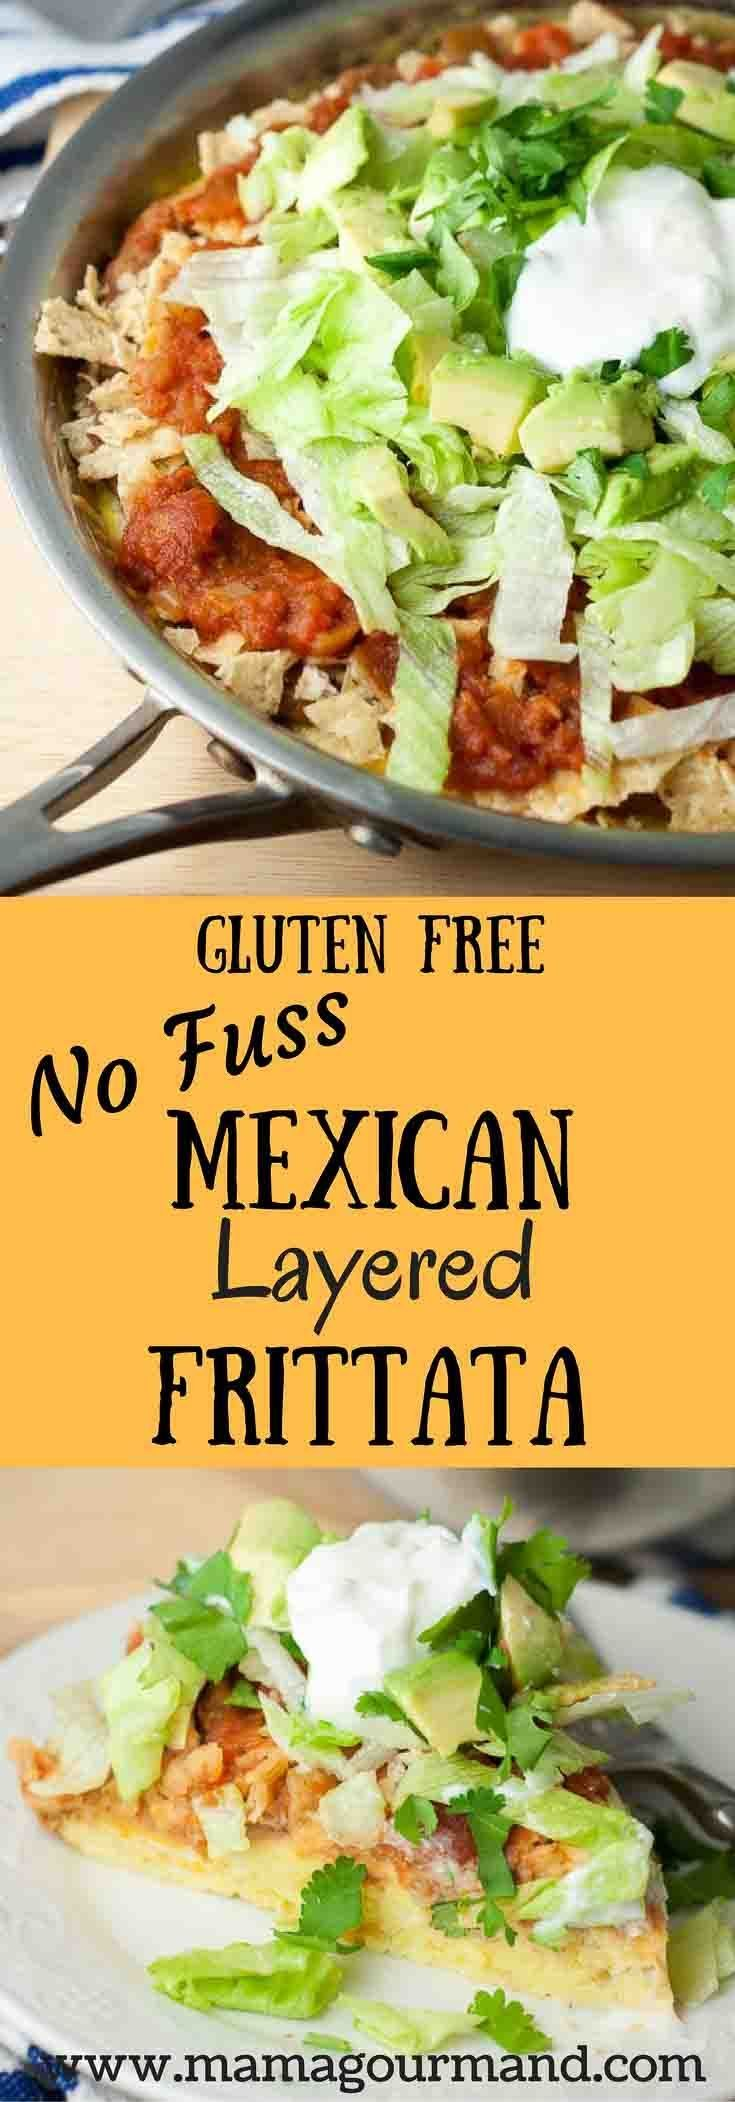 Mexican Layered Frittata uses a fluffy, baked egg crust to layer melted cheese, refried beans, bright salsa, and crisp tortillas with all the fixings. http://www.mamagourmand.com via @mamagourmand